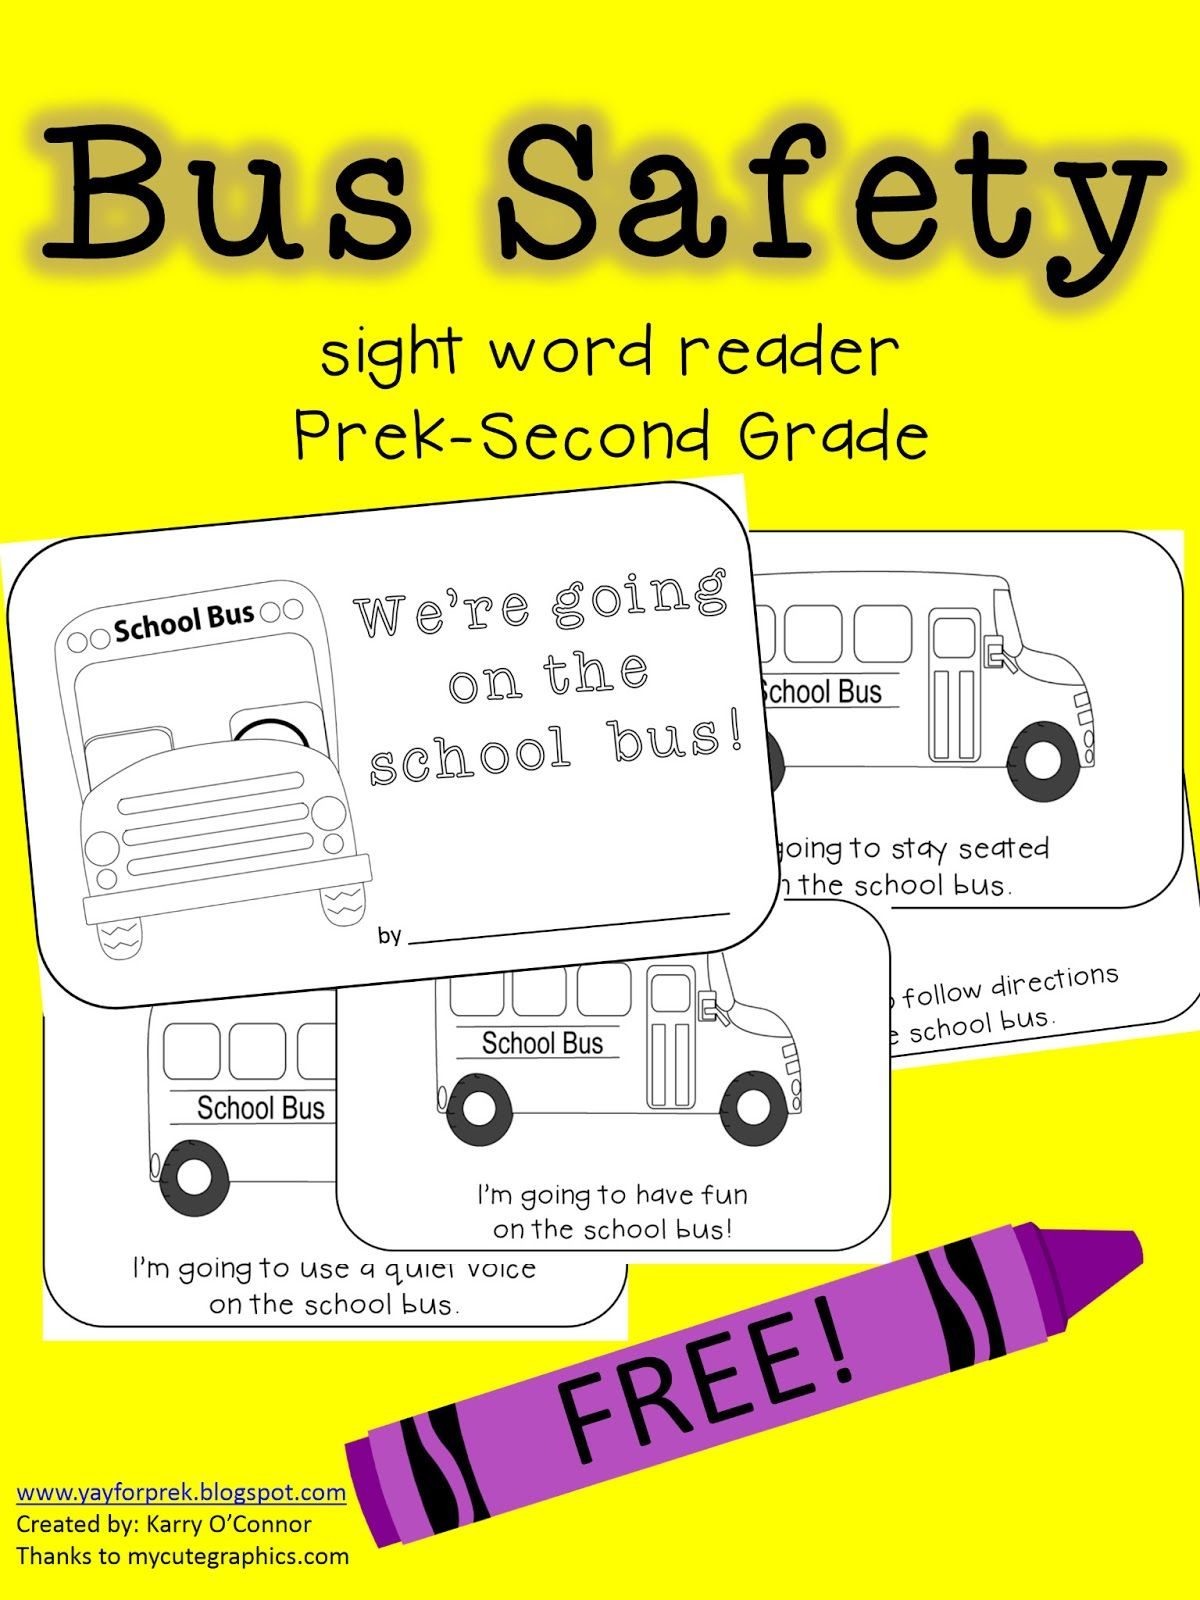 Yay for PreK! Friday Freebie Bus Safety Sight Word